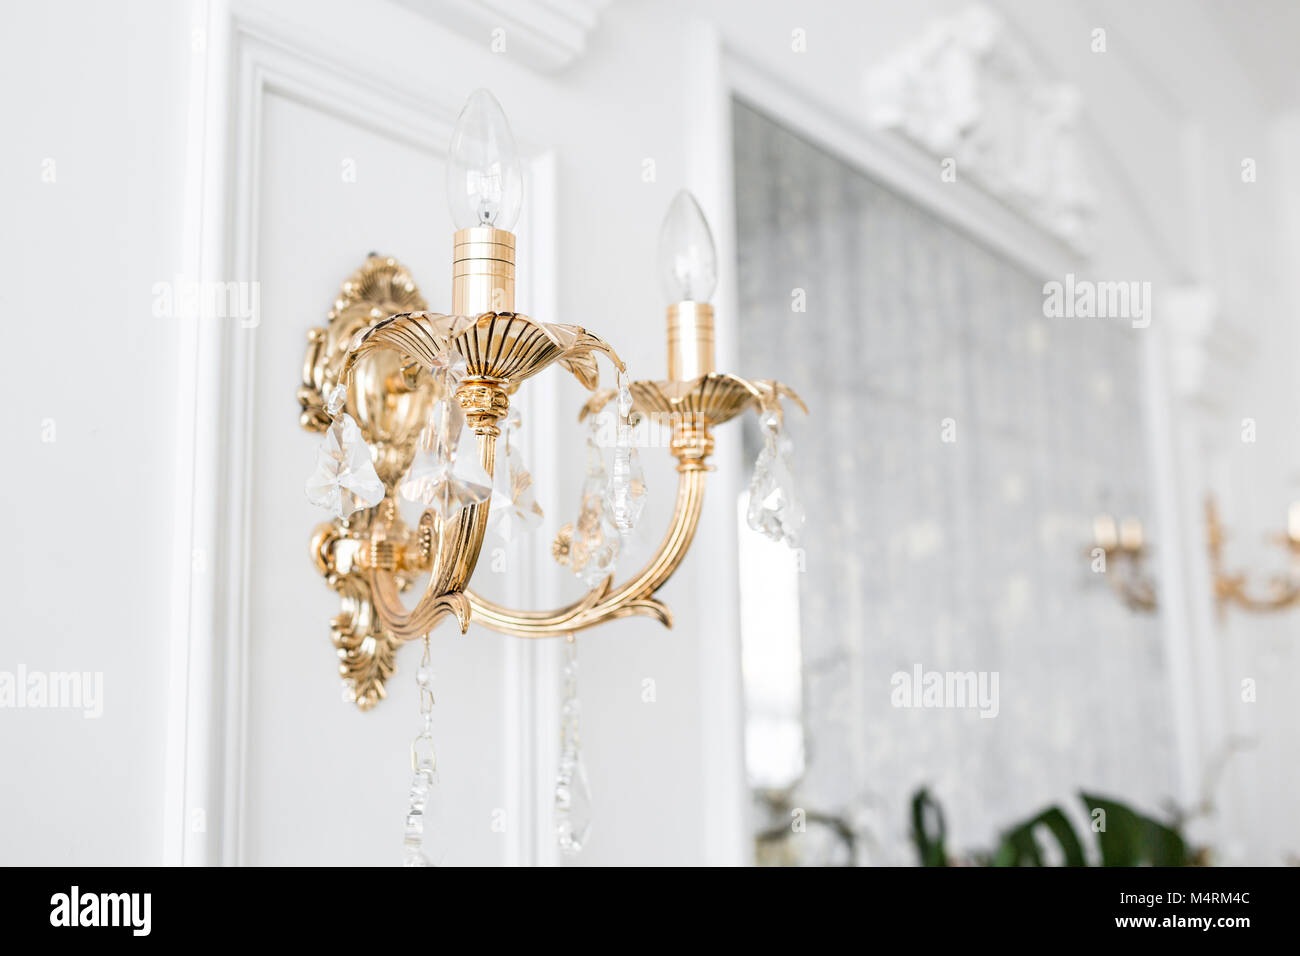 Stucco Molding Imágenes De Stock & Stucco Molding Fotos De Stock - Alamy